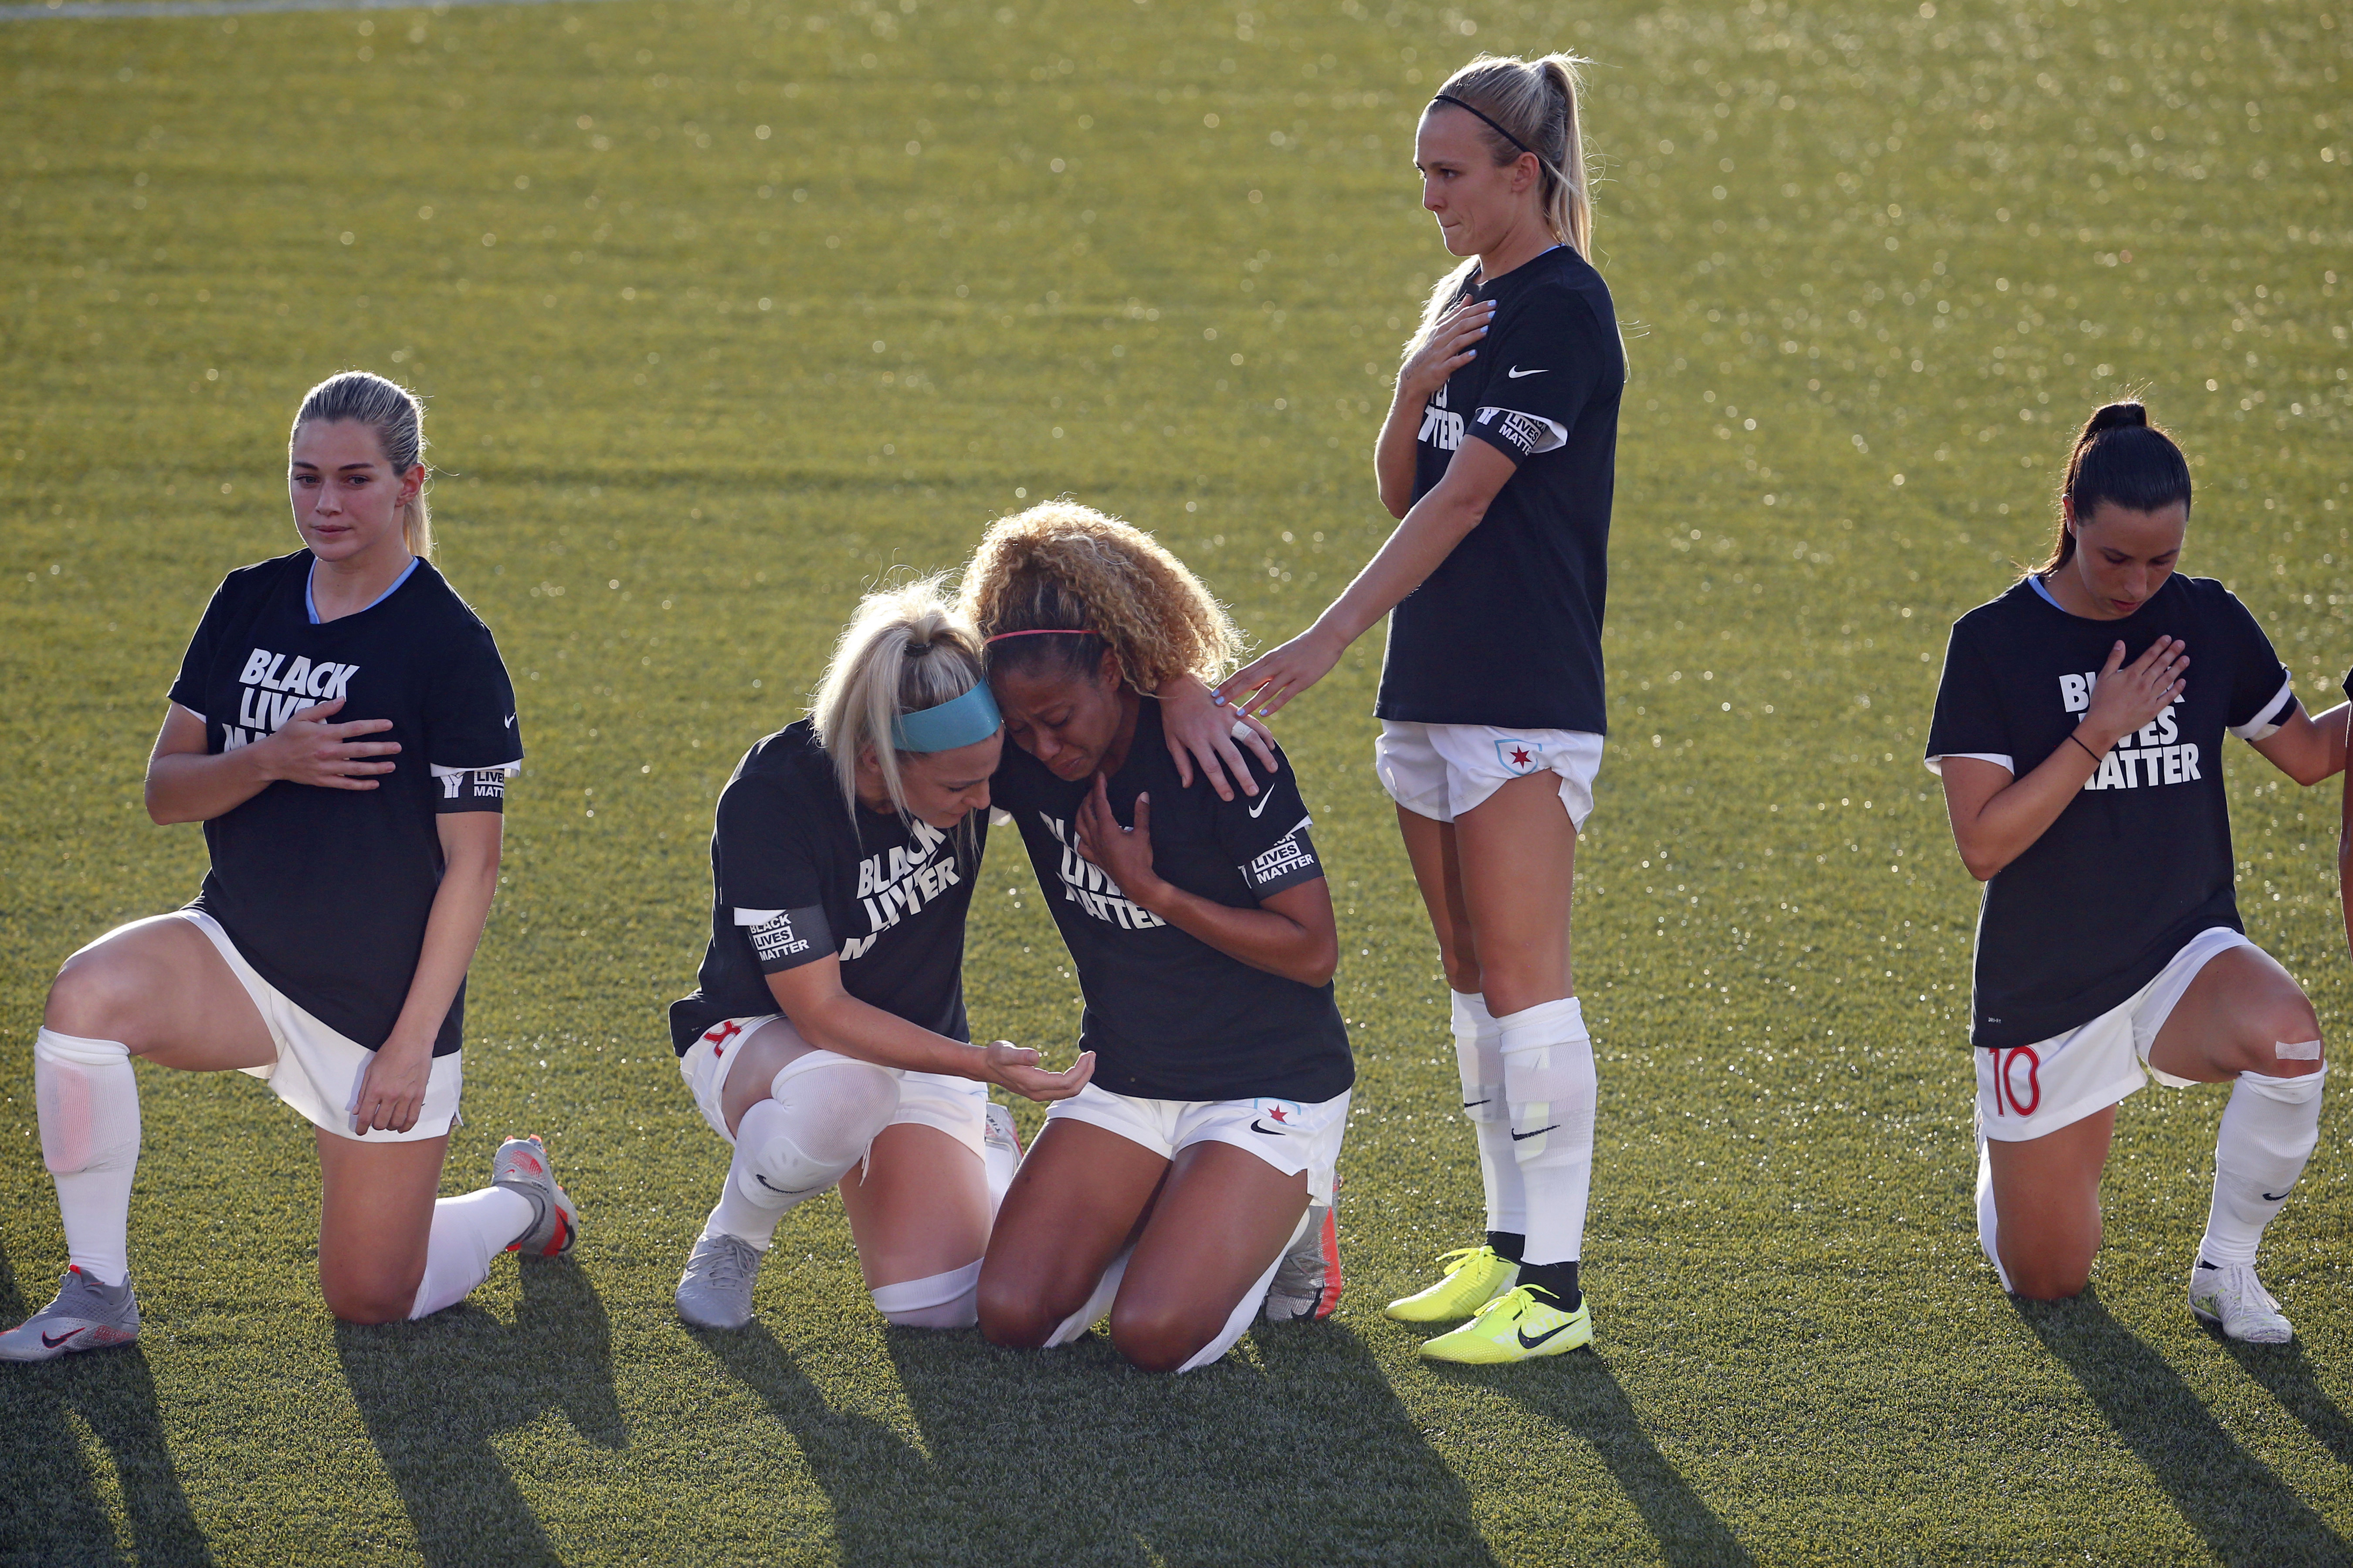 FILE - In this June 27, 2020, file phohto, Chicago Red Stars' Julie Ertz, second from left, holds Casey Short, center, while other players for the team kneel during the national anthem before an NWSL Challenge Cup soccer match against the Washington Spirit at Zions Bank Stadium in Herriman, Utah. The National Women's Soccer League revised its anthem policy after most players knelt during the anthem before season-opening games last weekend at the Challenge Cup. (AP Photo/Rick Bowmer, File) ORG XMIT: NY158